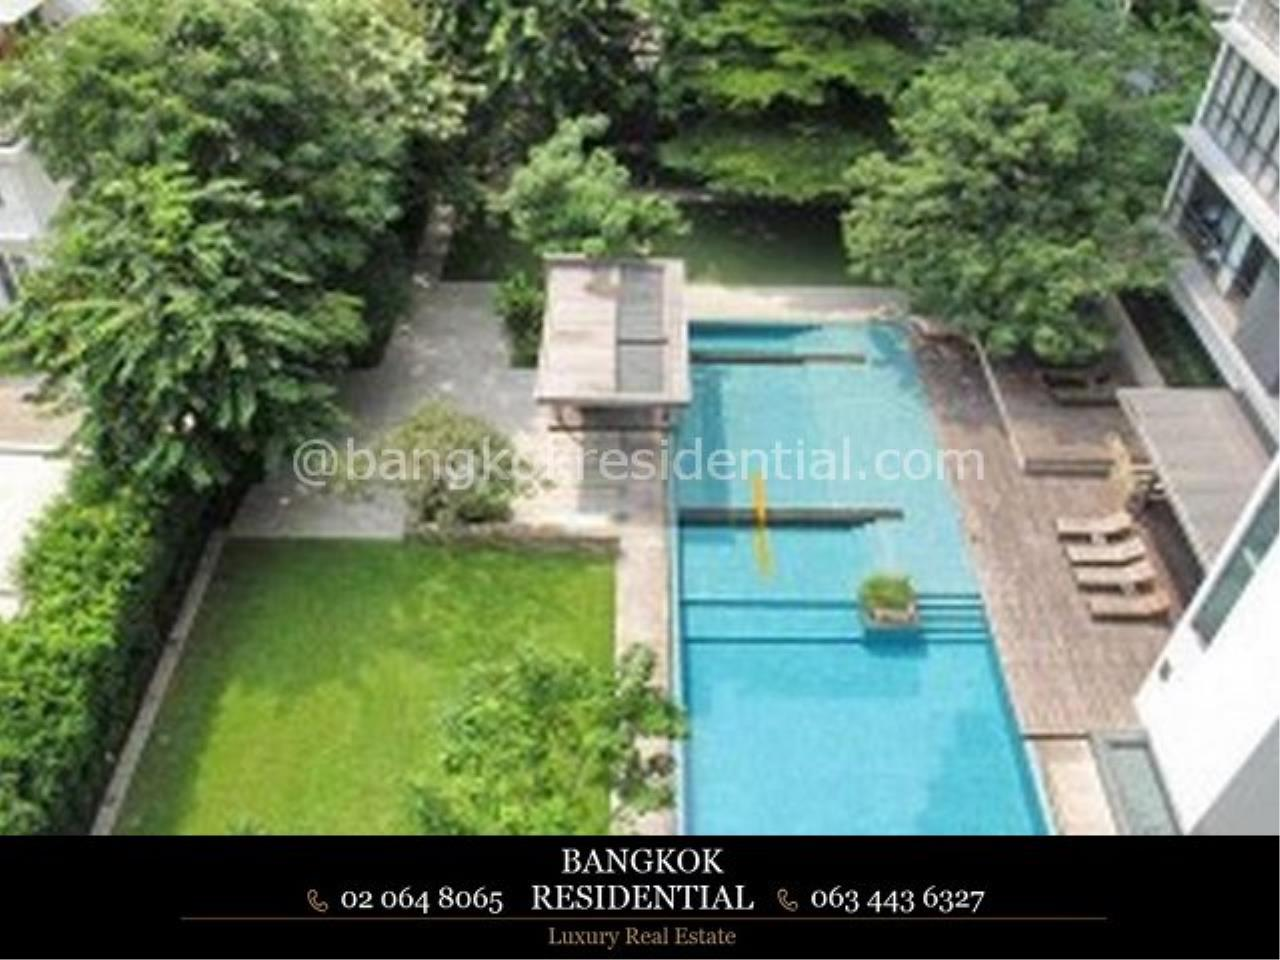 Bangkok Residential Agency's 2BR Domus For Sale (BR3439CD) 3